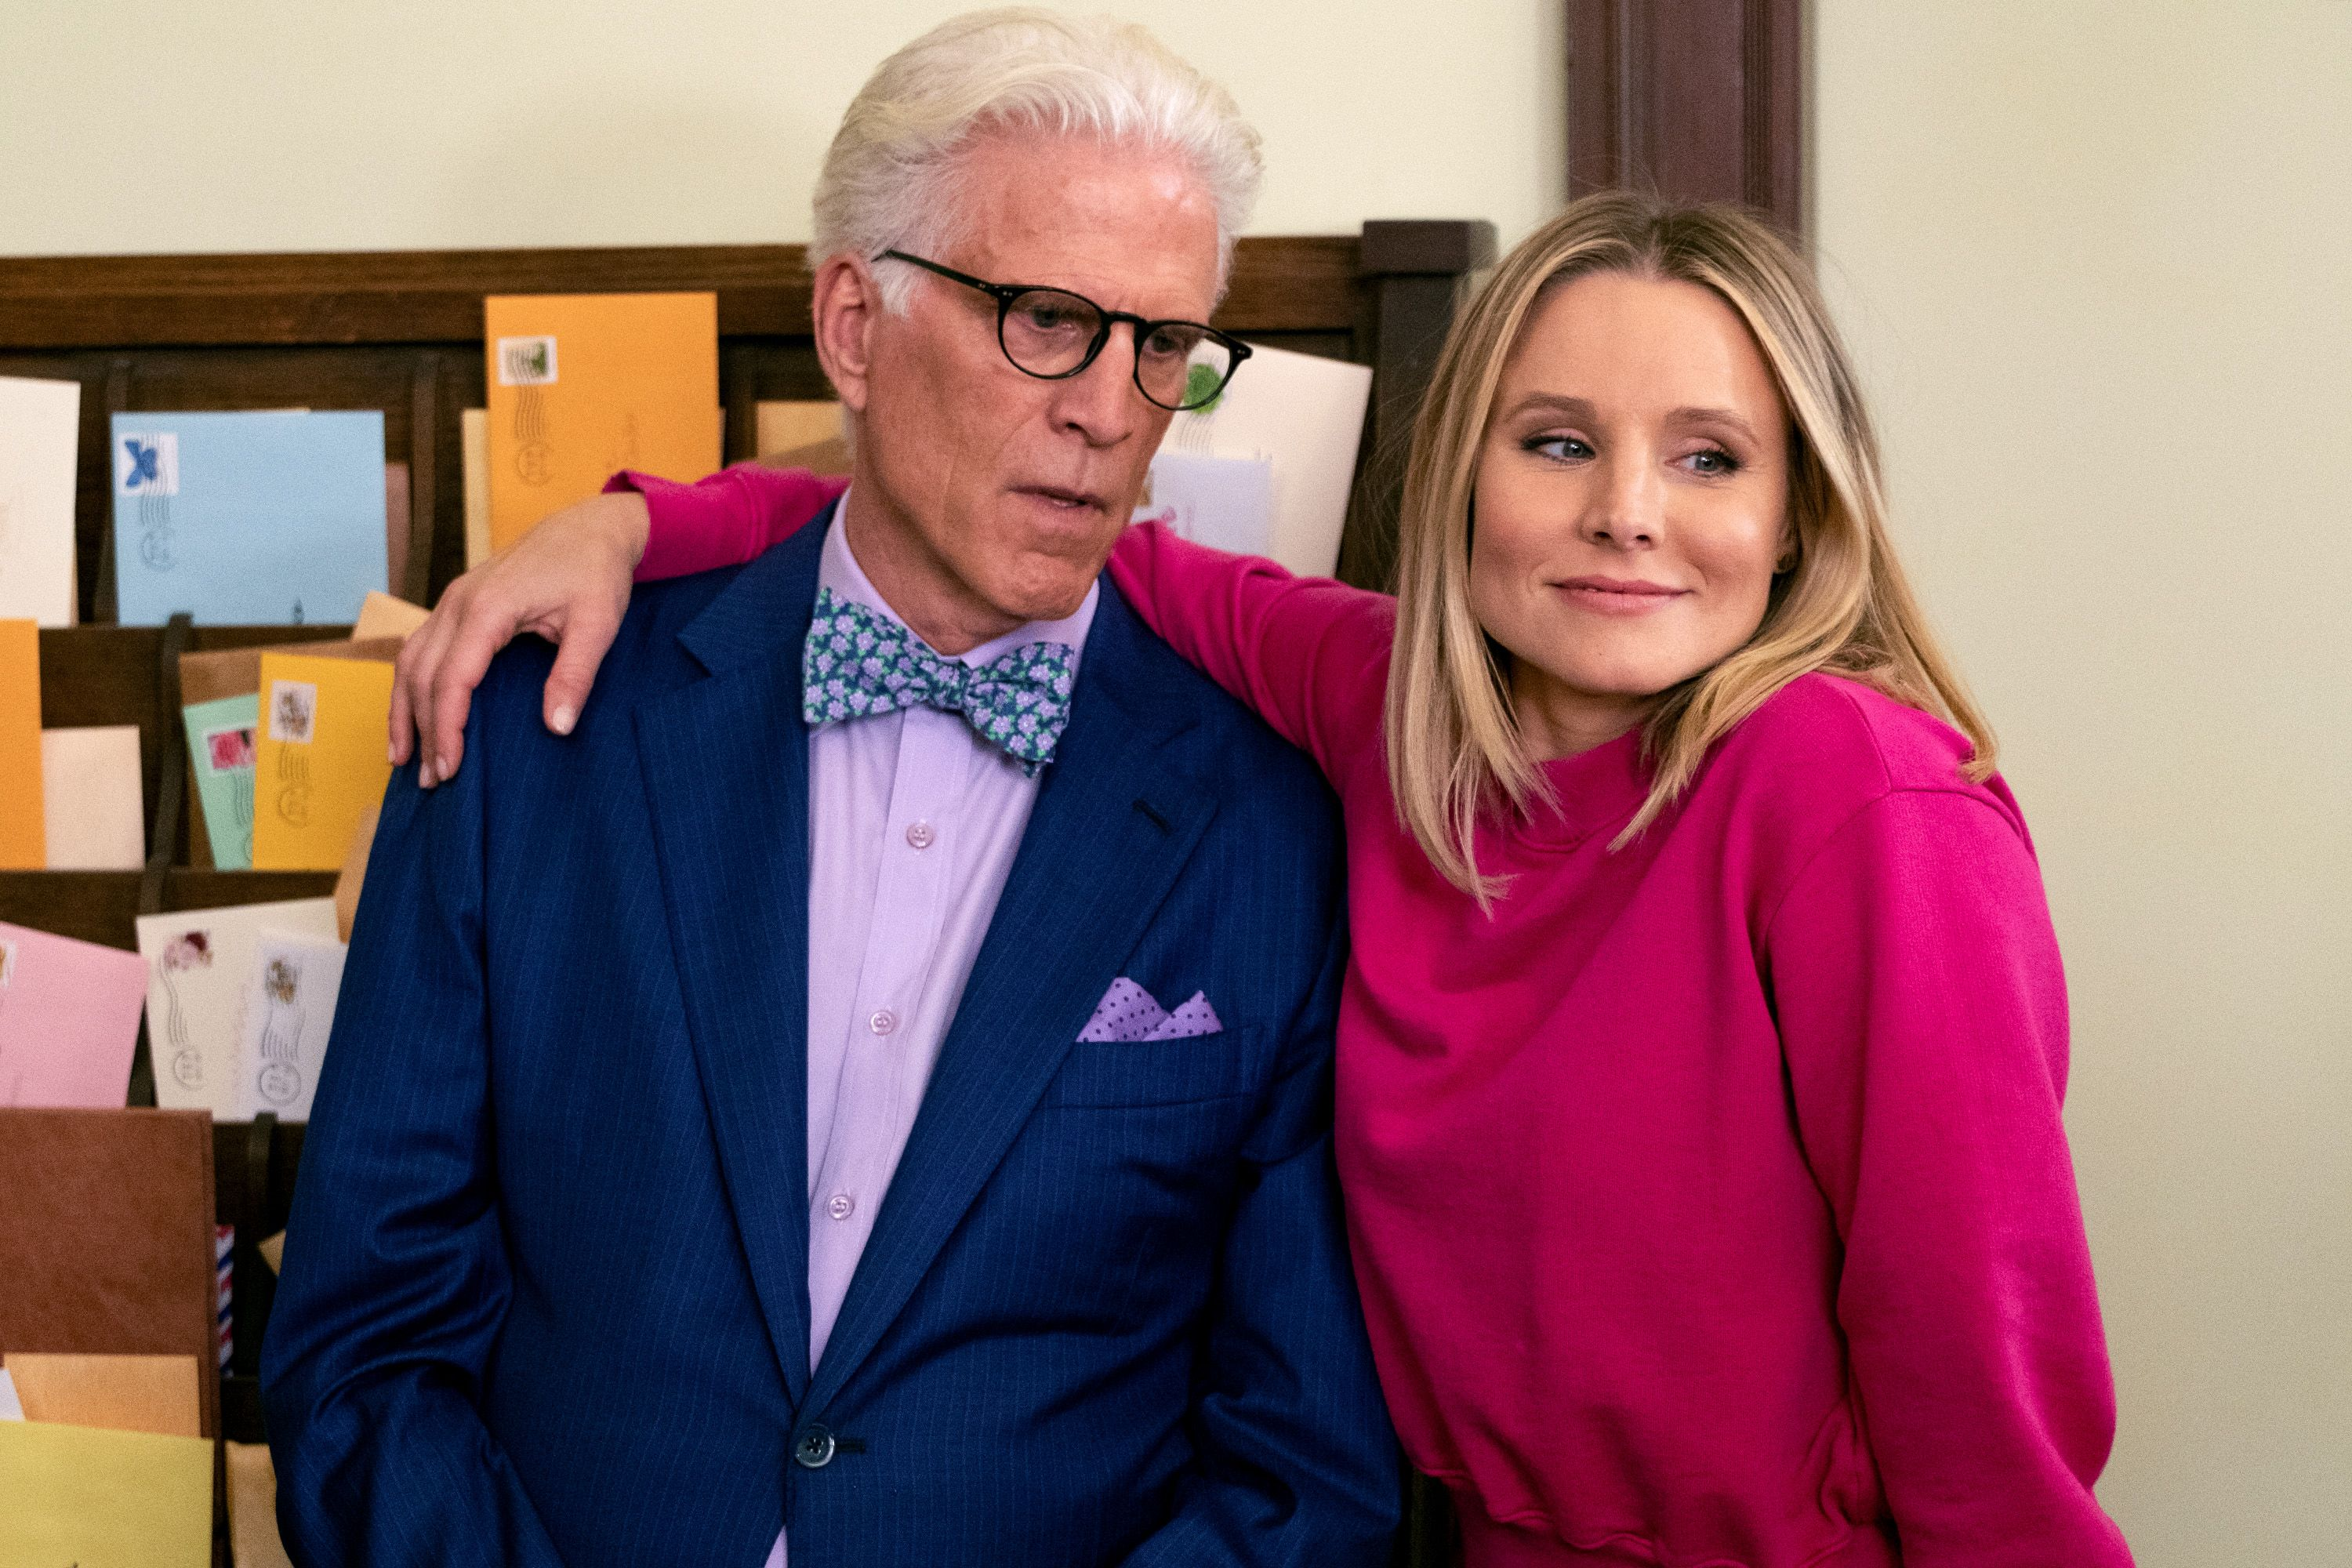 How to Dress Like The Good Place Characters for Halloween